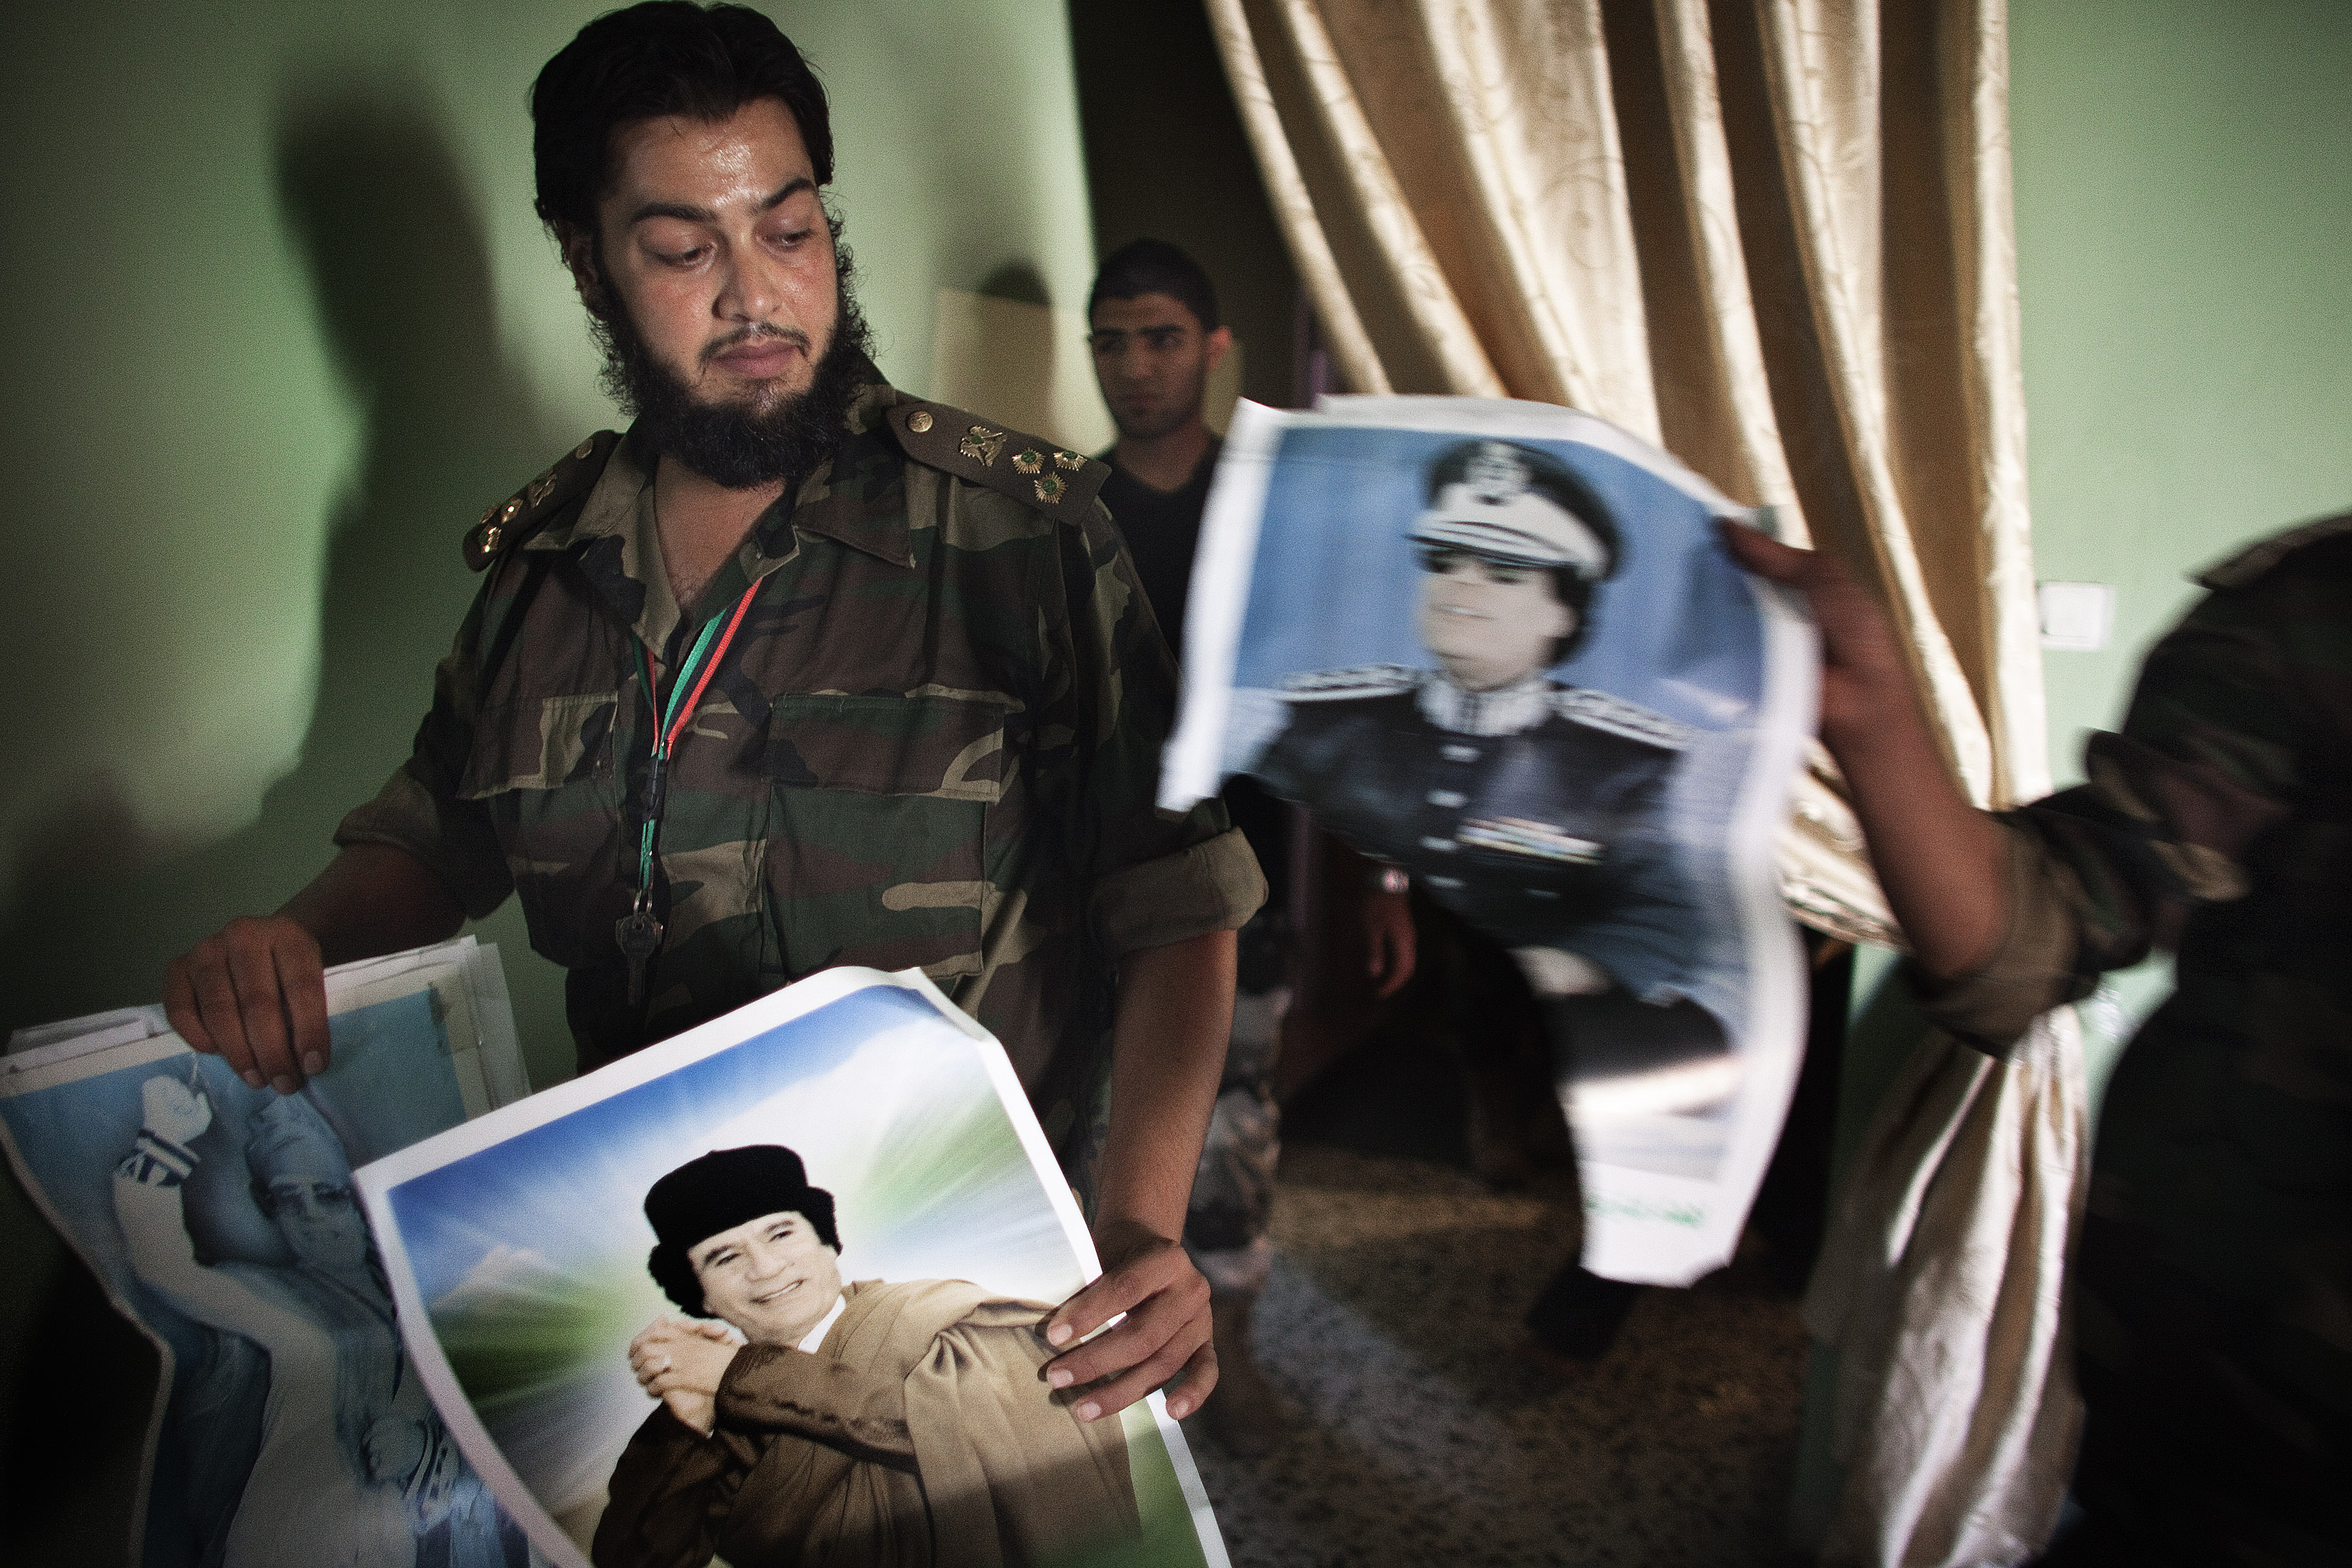 National Transitional Council (NTC) fighters confiscate posters of former Libyan leader Moammar Gadhafi in the apartment of a man suspected of being a loyalist in the restive Abu Salim district of Tripoli October 15, 2011. AFP PHOTO/MARCO LONGARI (Photo credit should read MARCO LONGARI/AFP/Getty Images)